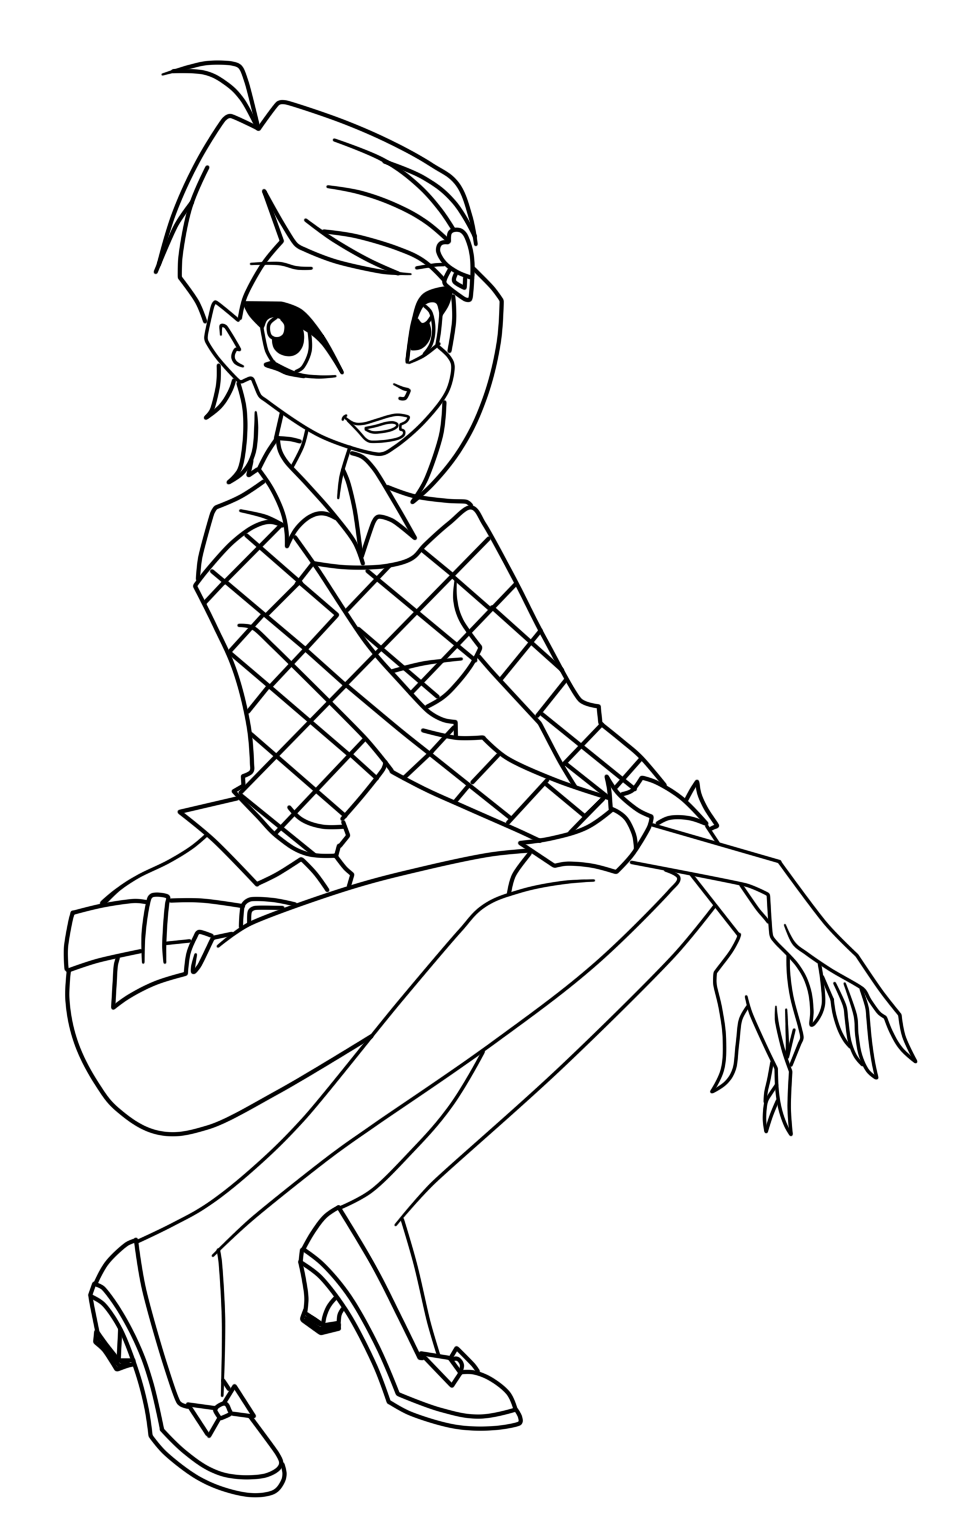 colouring pages for winx free printable winx coloring pages for kids cool2bkids colouring pages for winx